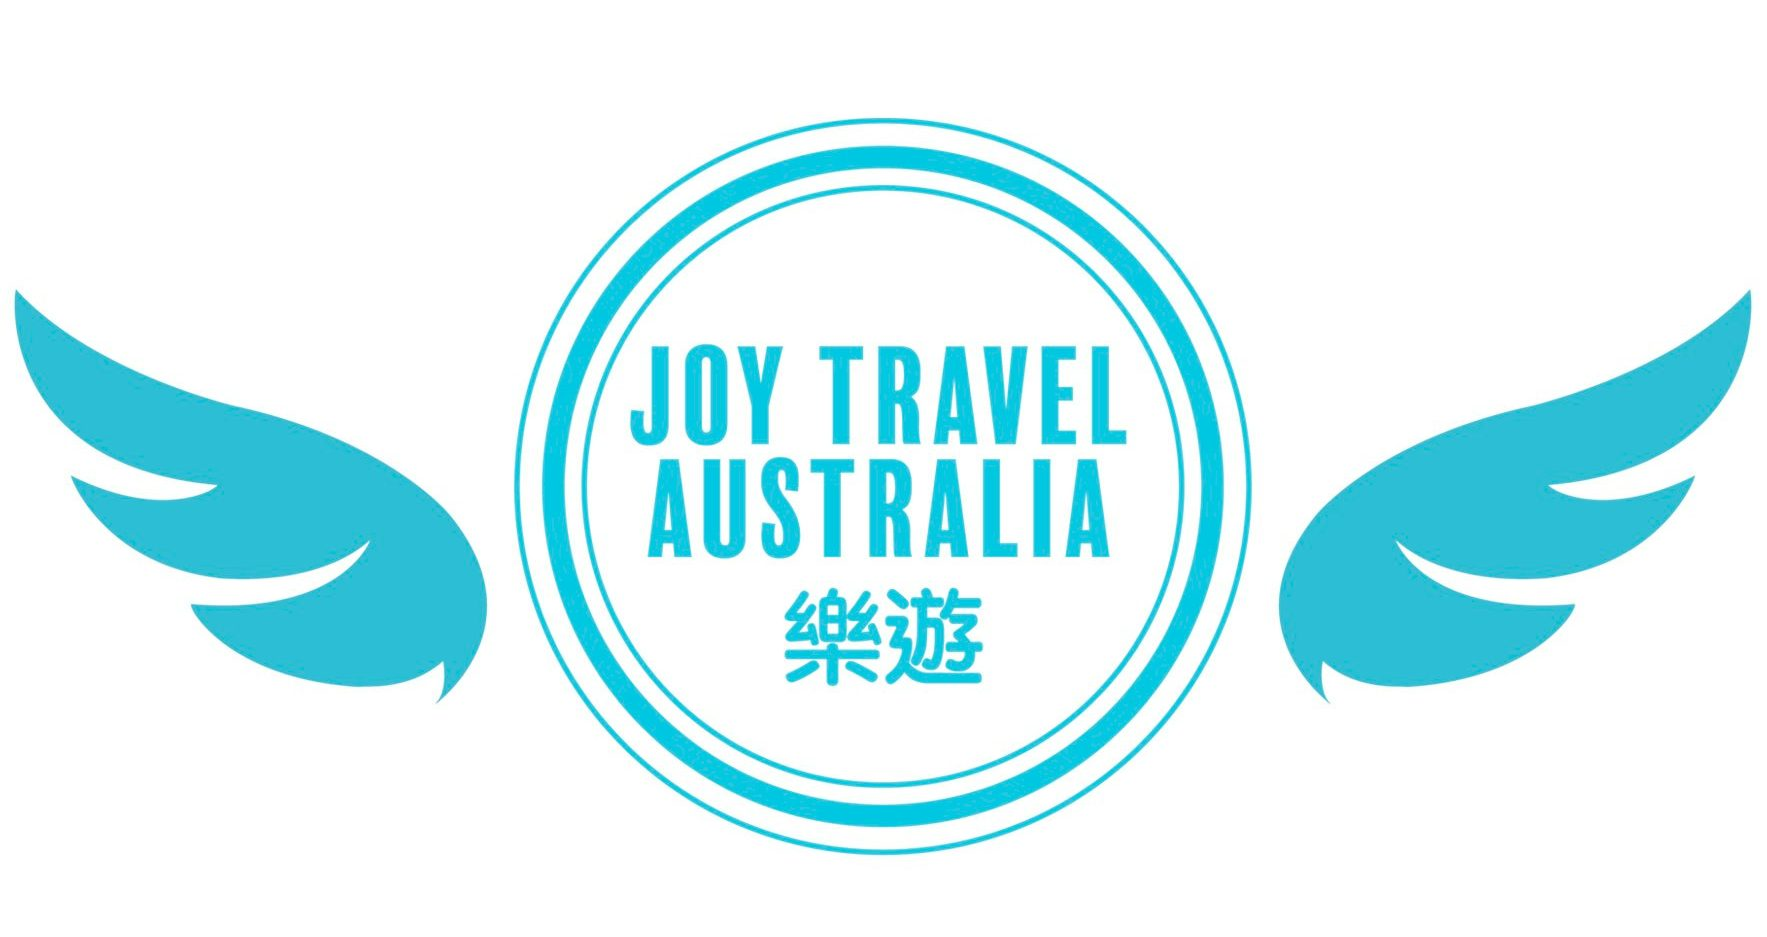 JOY TRAVEL AUSTRALIA